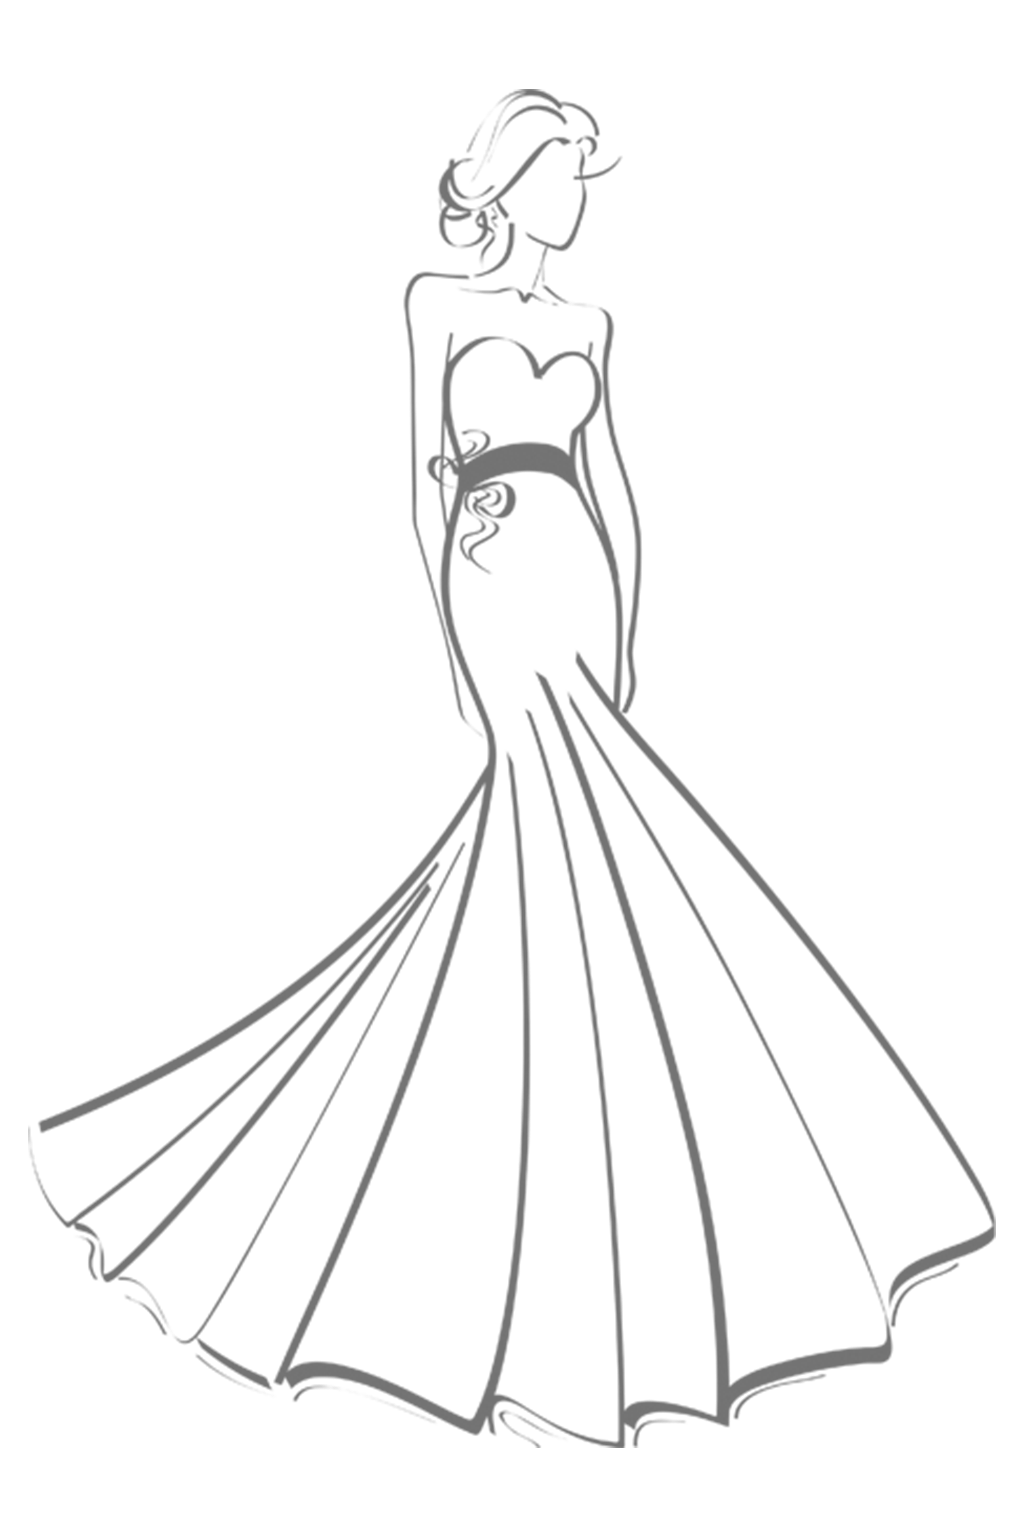 Drawing transparent dress. Collection of wedding